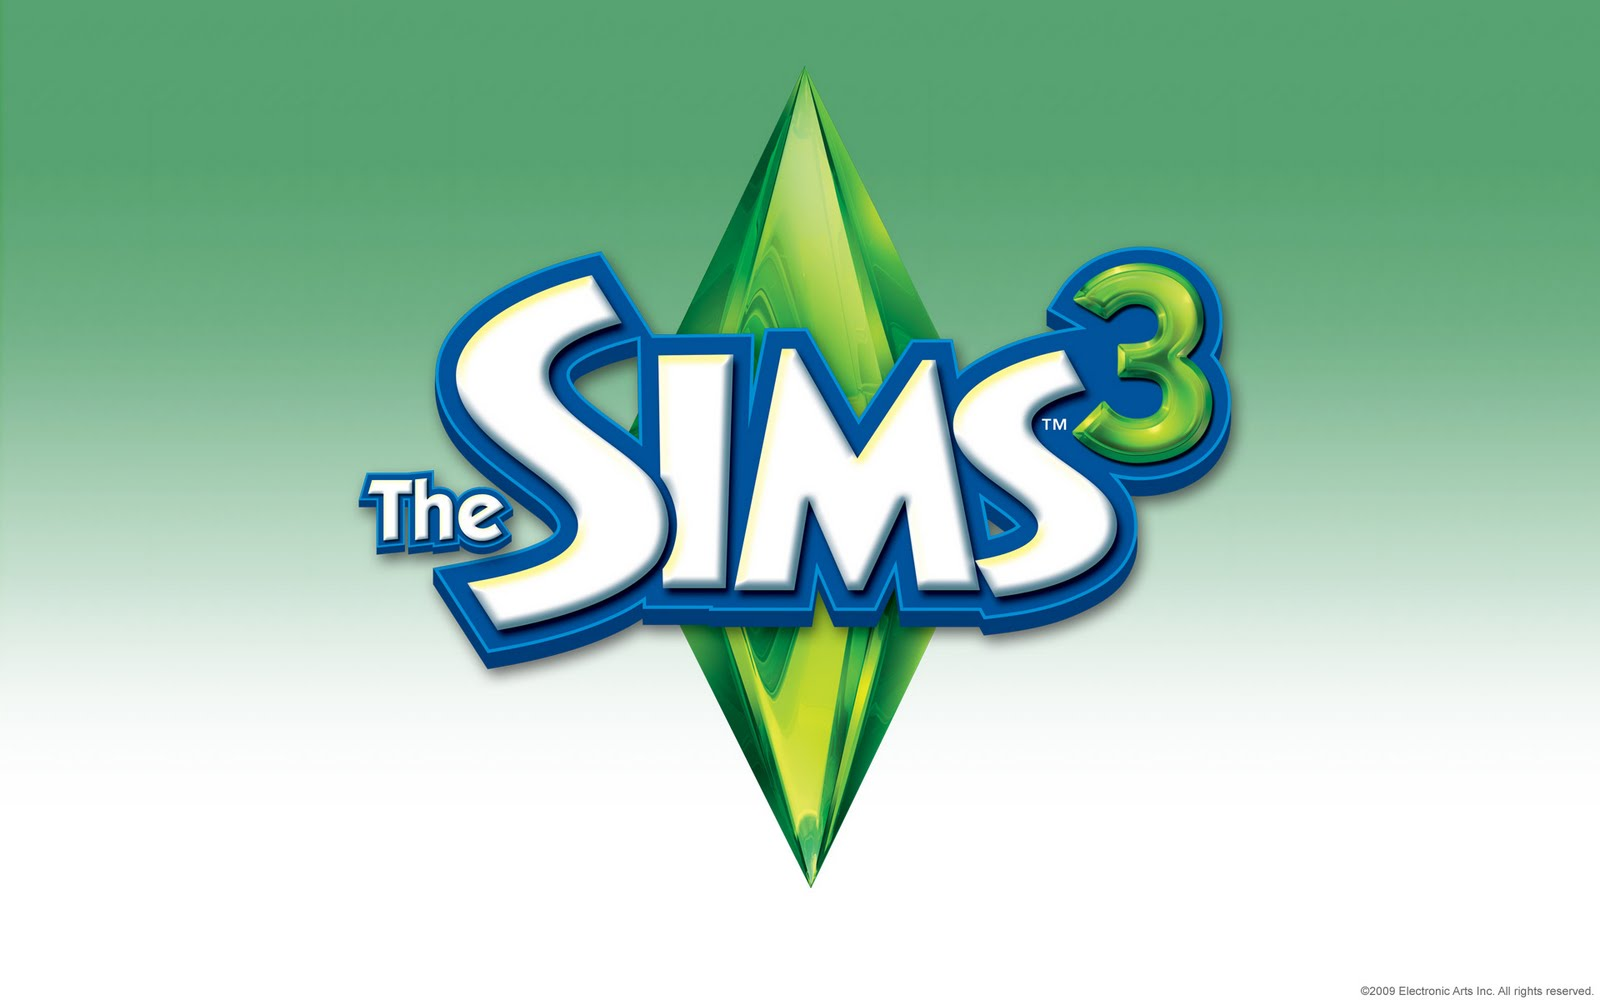 The Sims 3 wallpapers Simy World 3 1600x1000